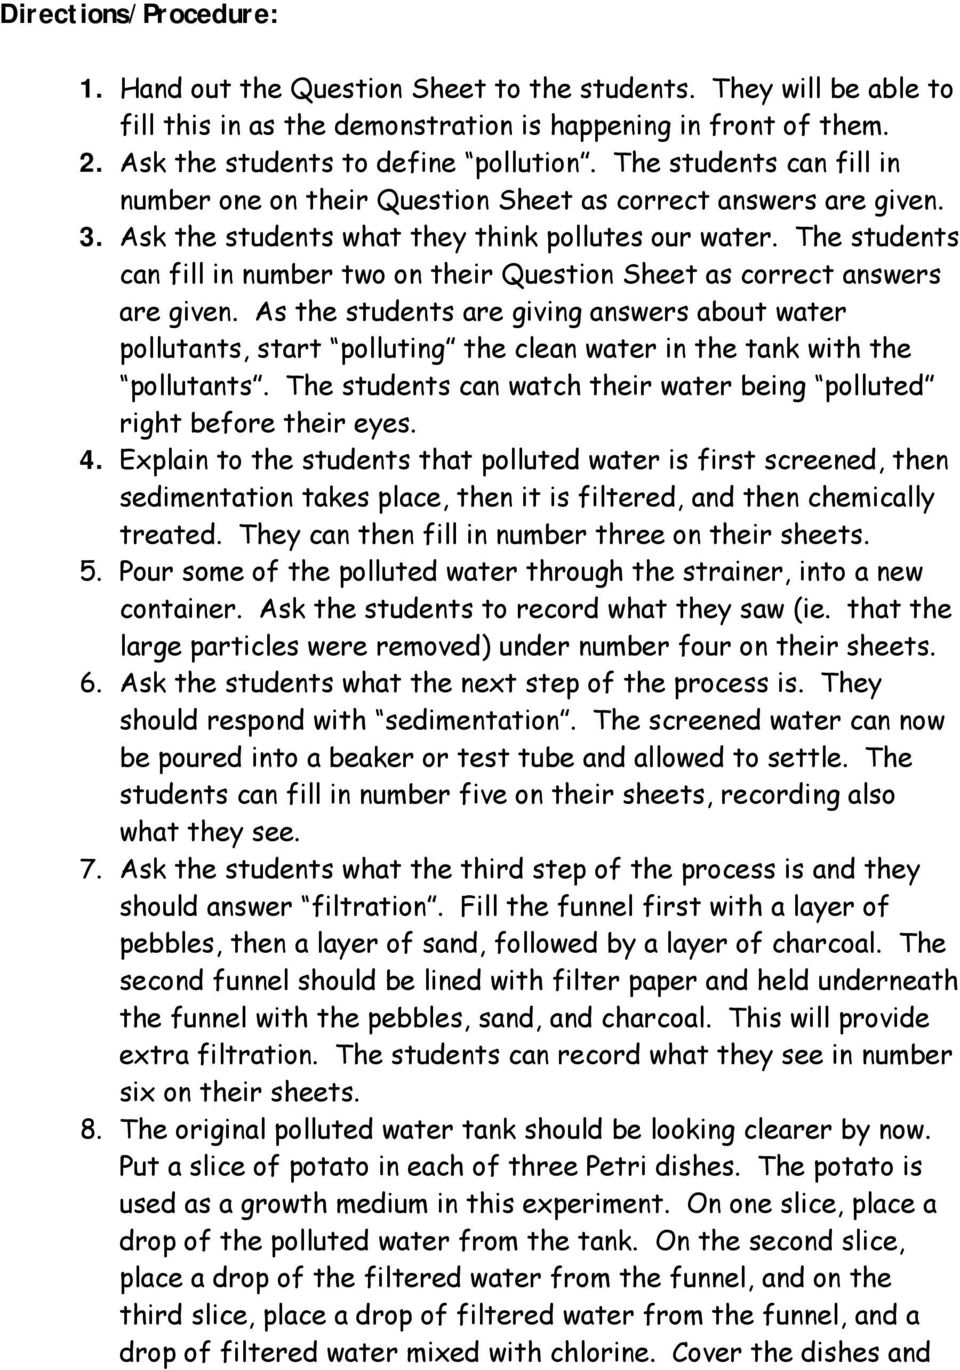 The students can fill in number two on their Question Sheet as correct answers are given.